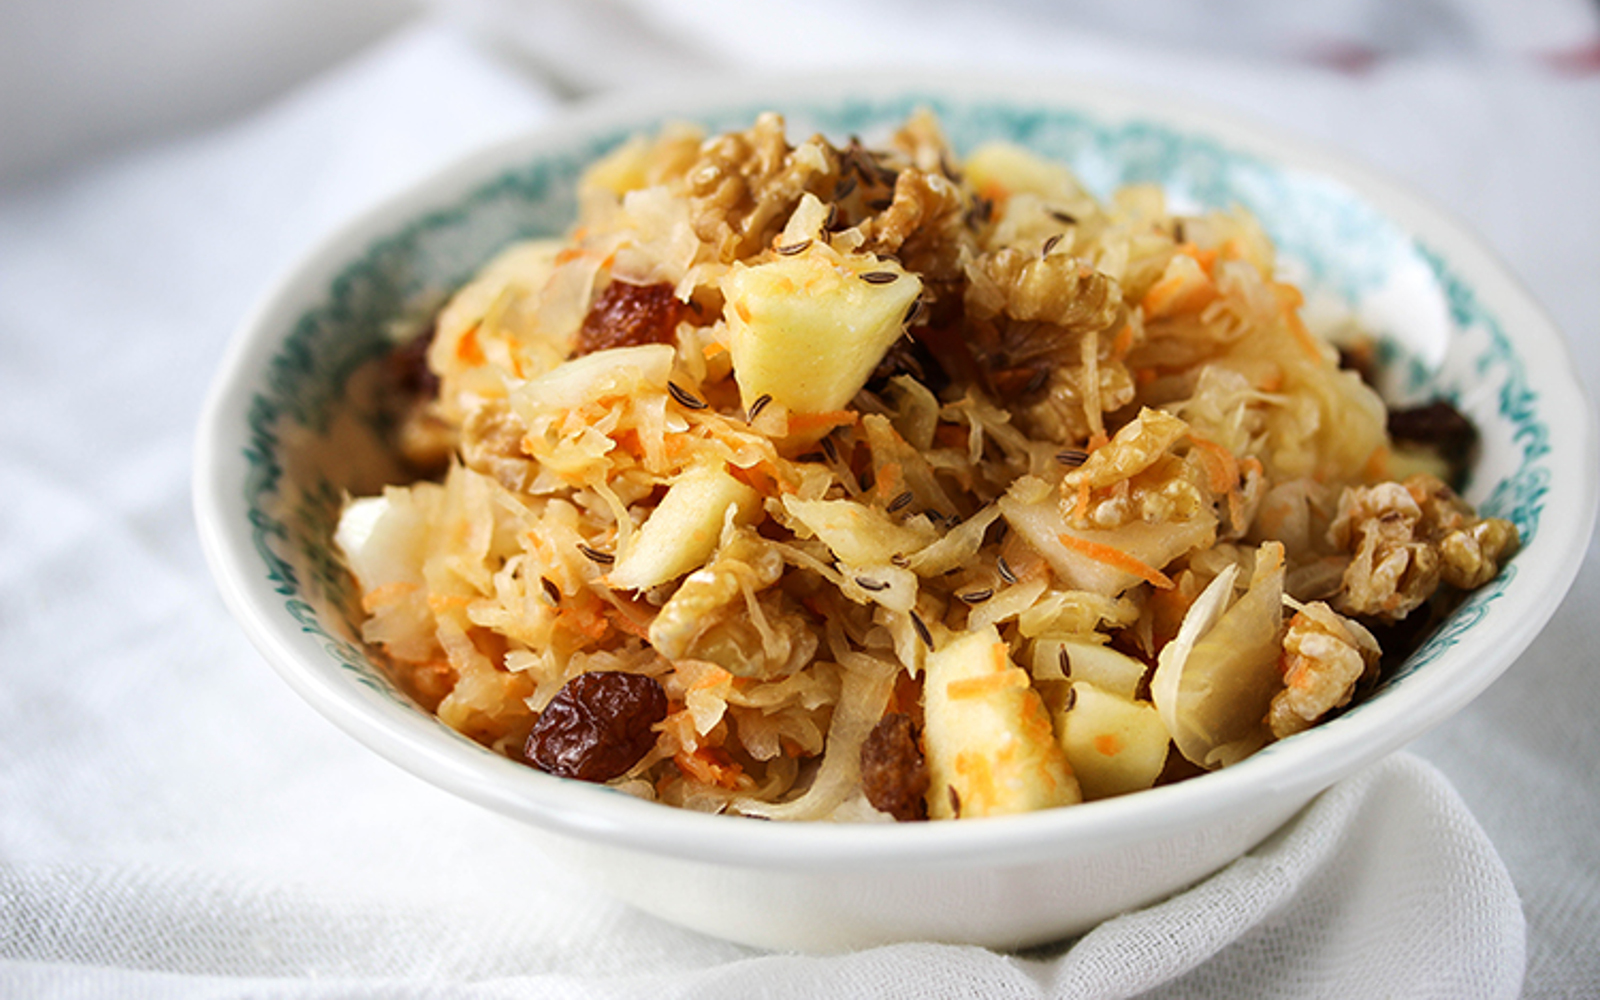 Sauerkraut Salad With Apples and Walnuts